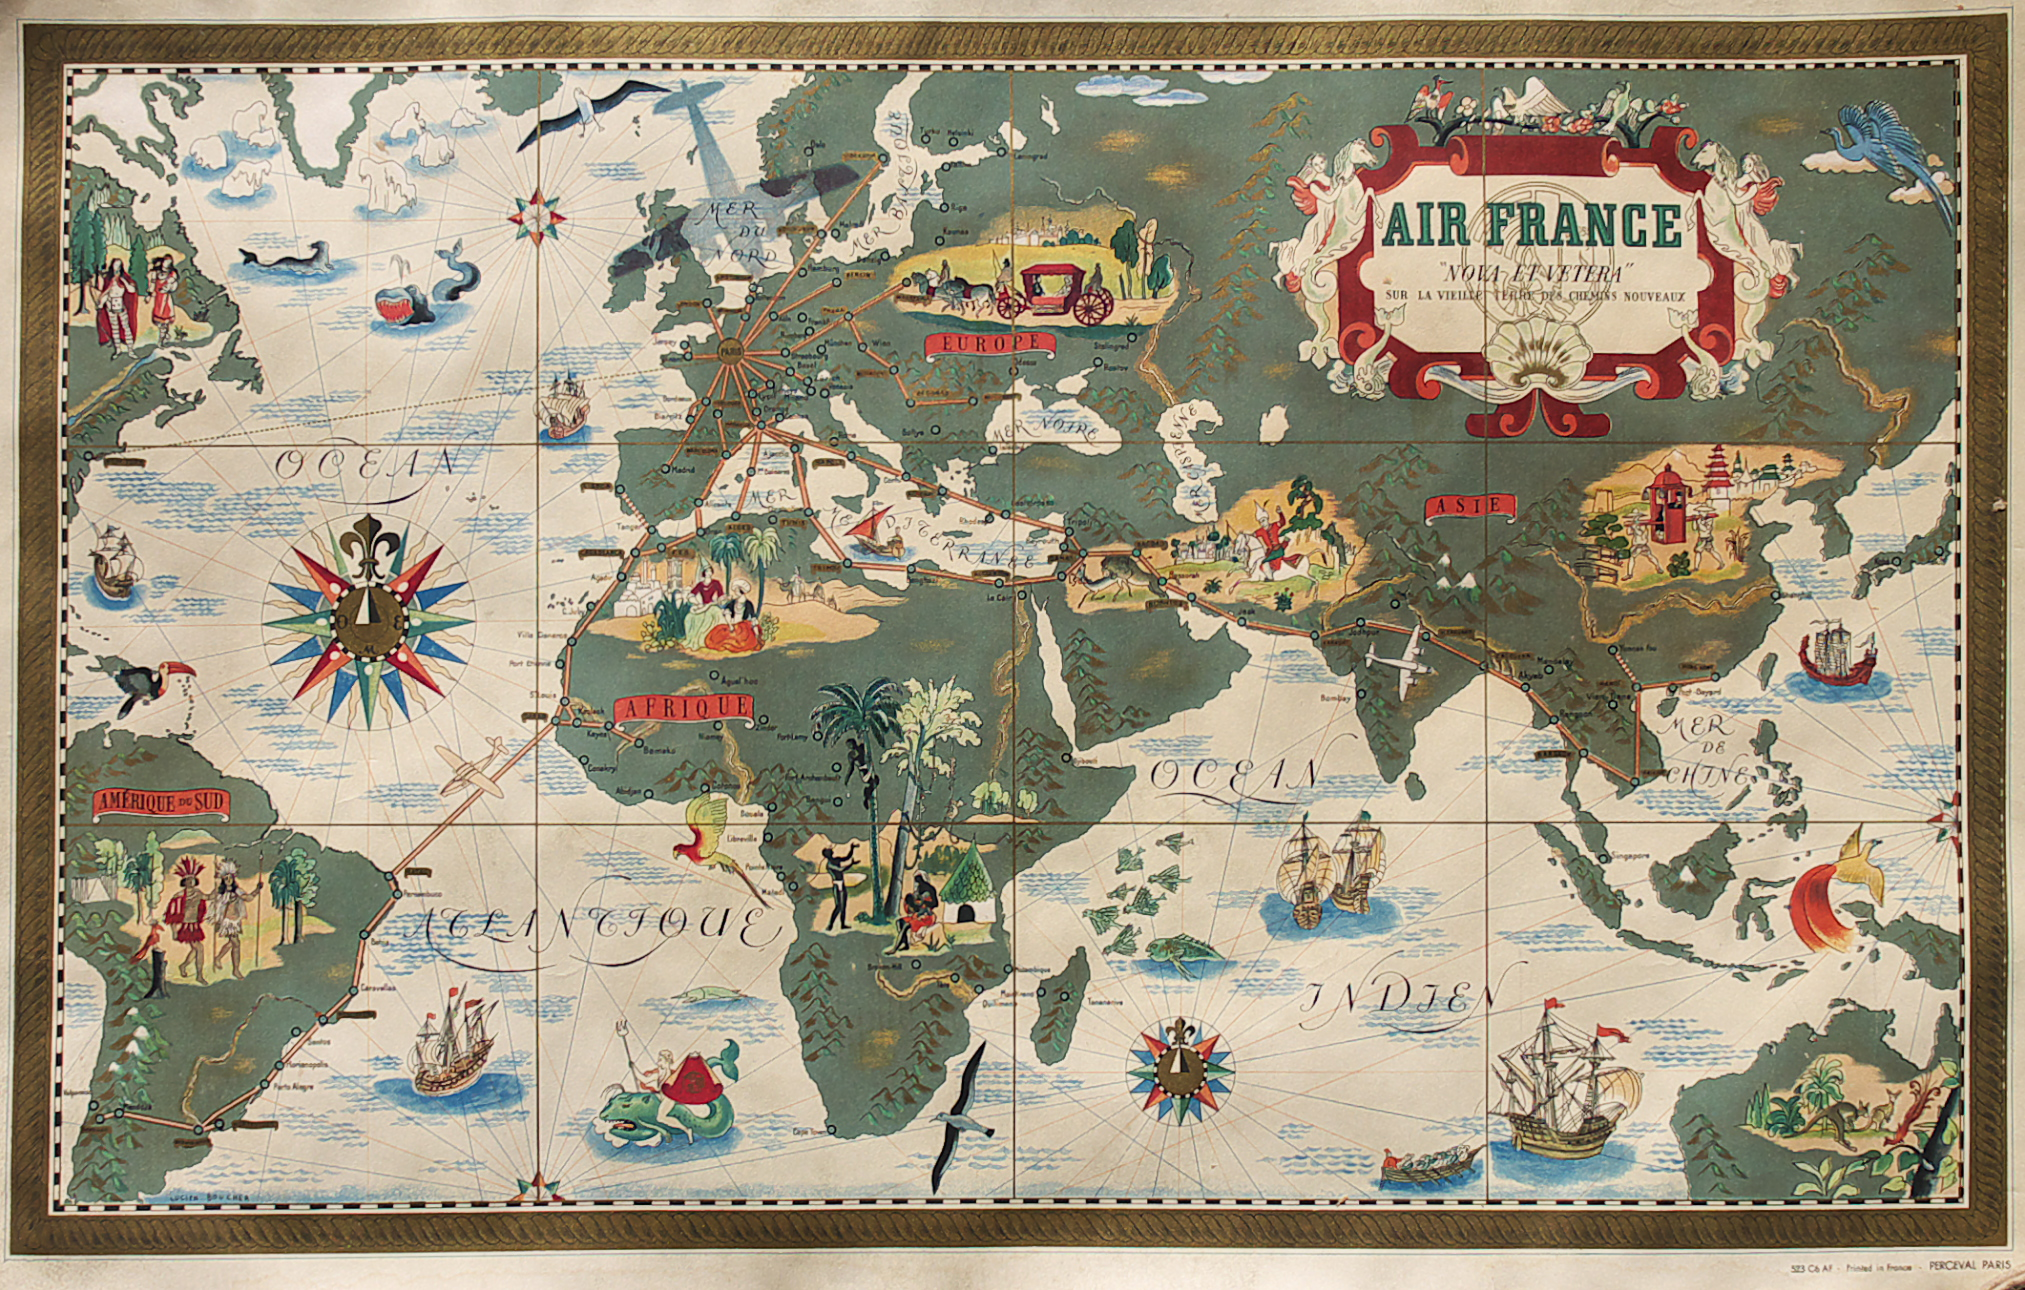 Map Of France Poster.Air France Poster Boucher Perceval 1939 Michael Jennings Antique